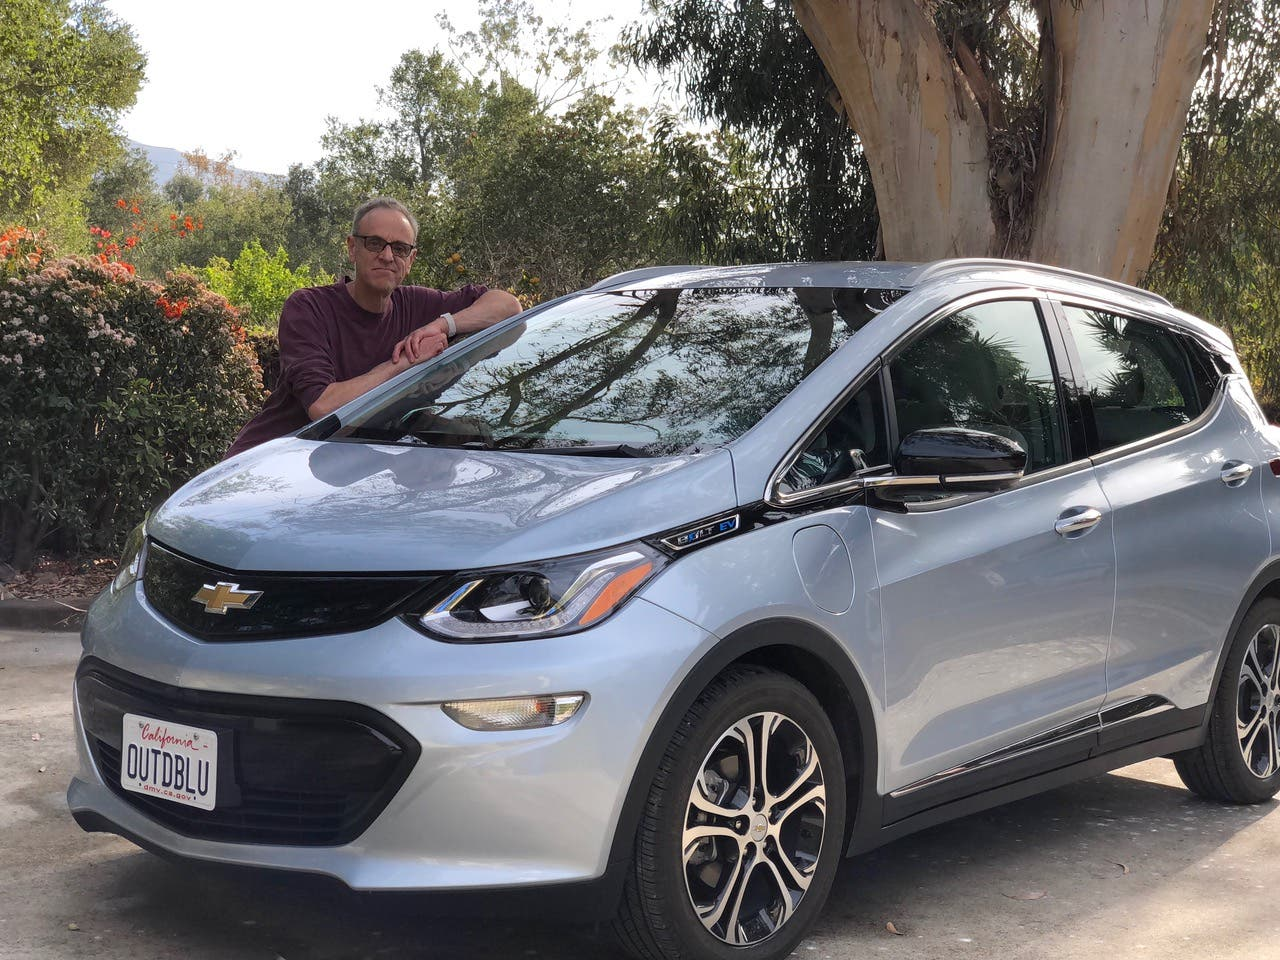 My Year of Living Electrically (Chevy Bolt Review)